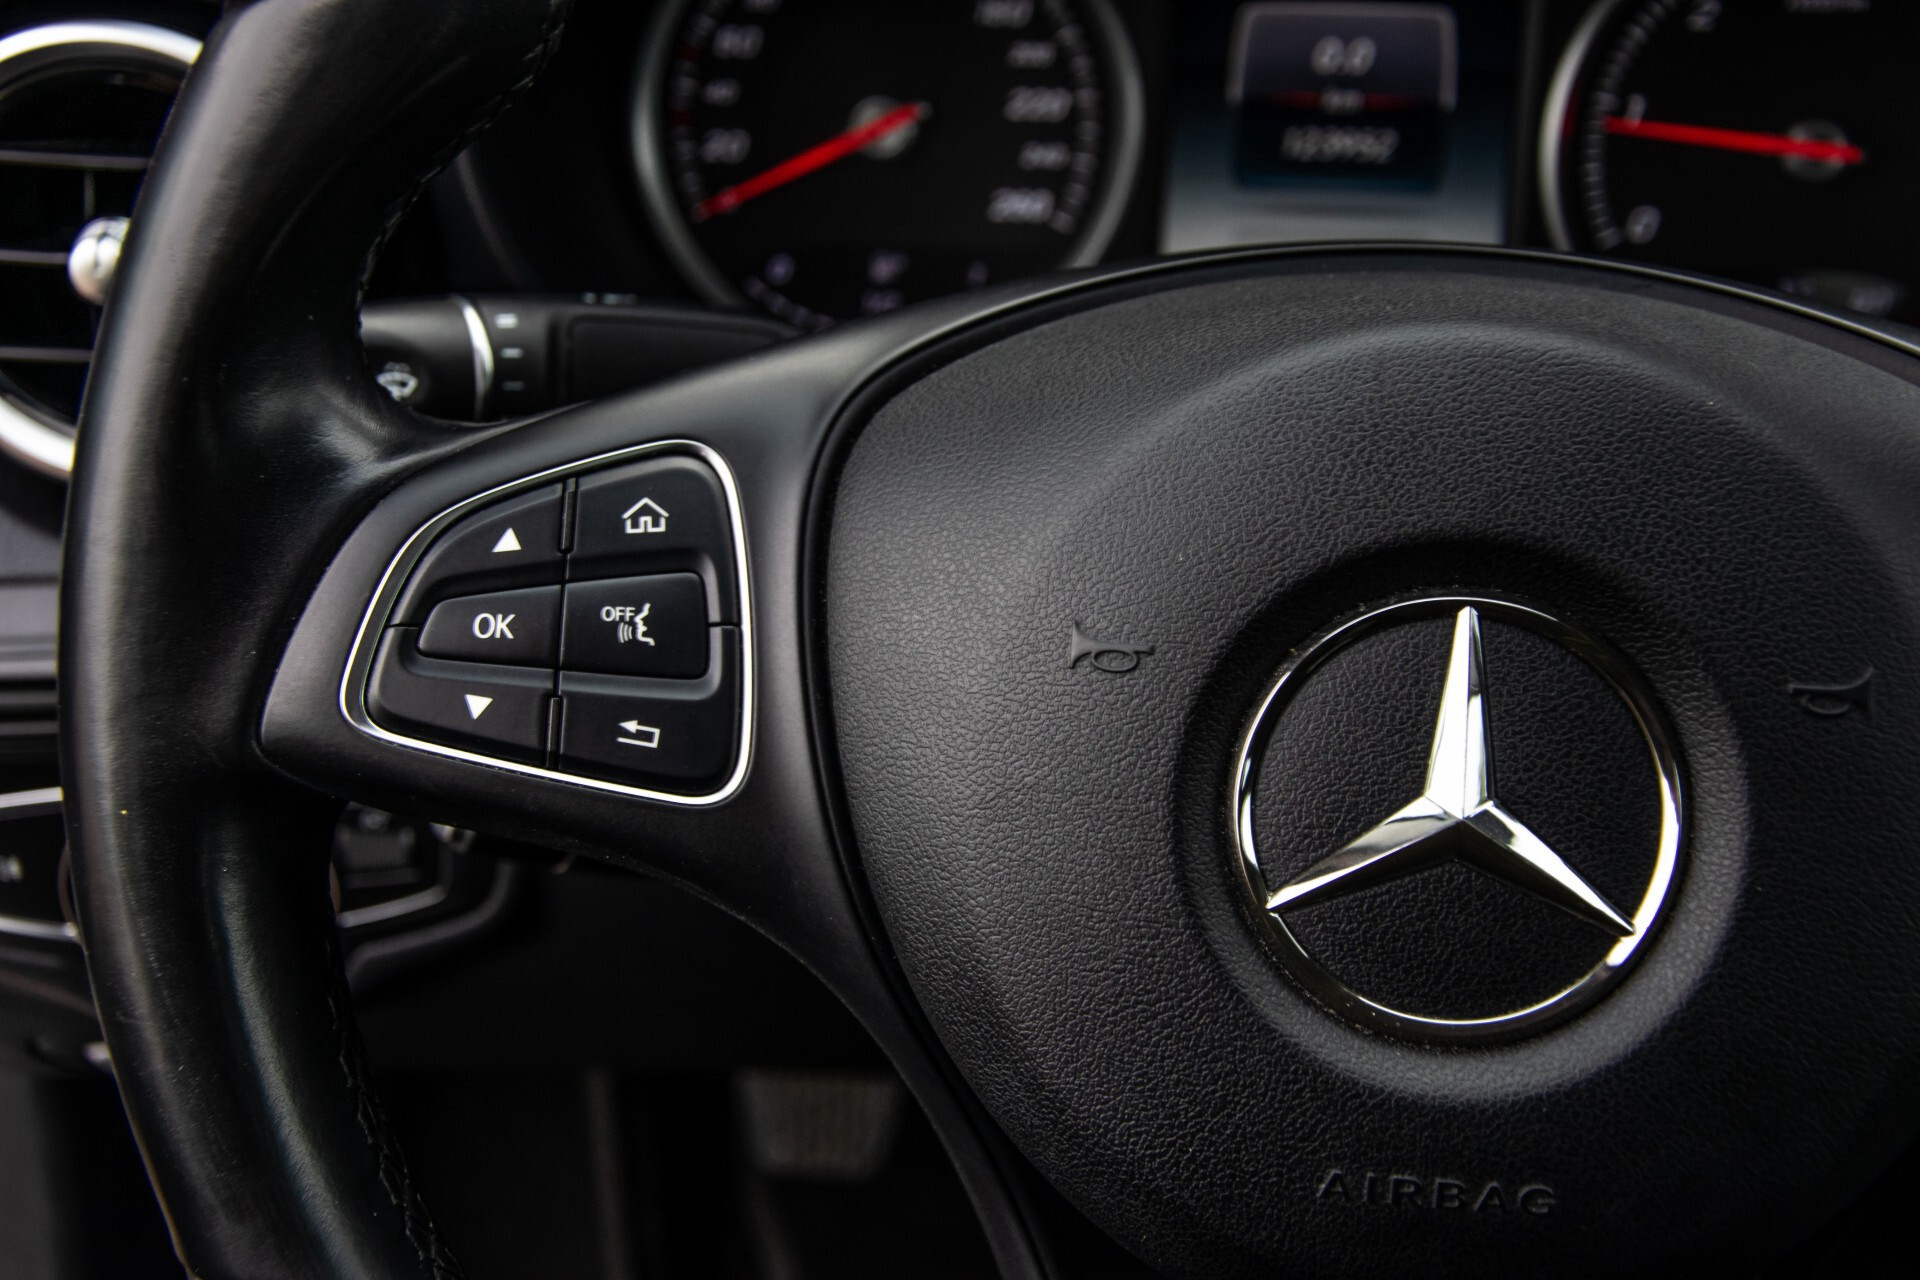 Mercedes-Benz C-Klasse 180 Bluetec Lease Edition Intelligent Light System/Cruise Control/Navi Foto 9